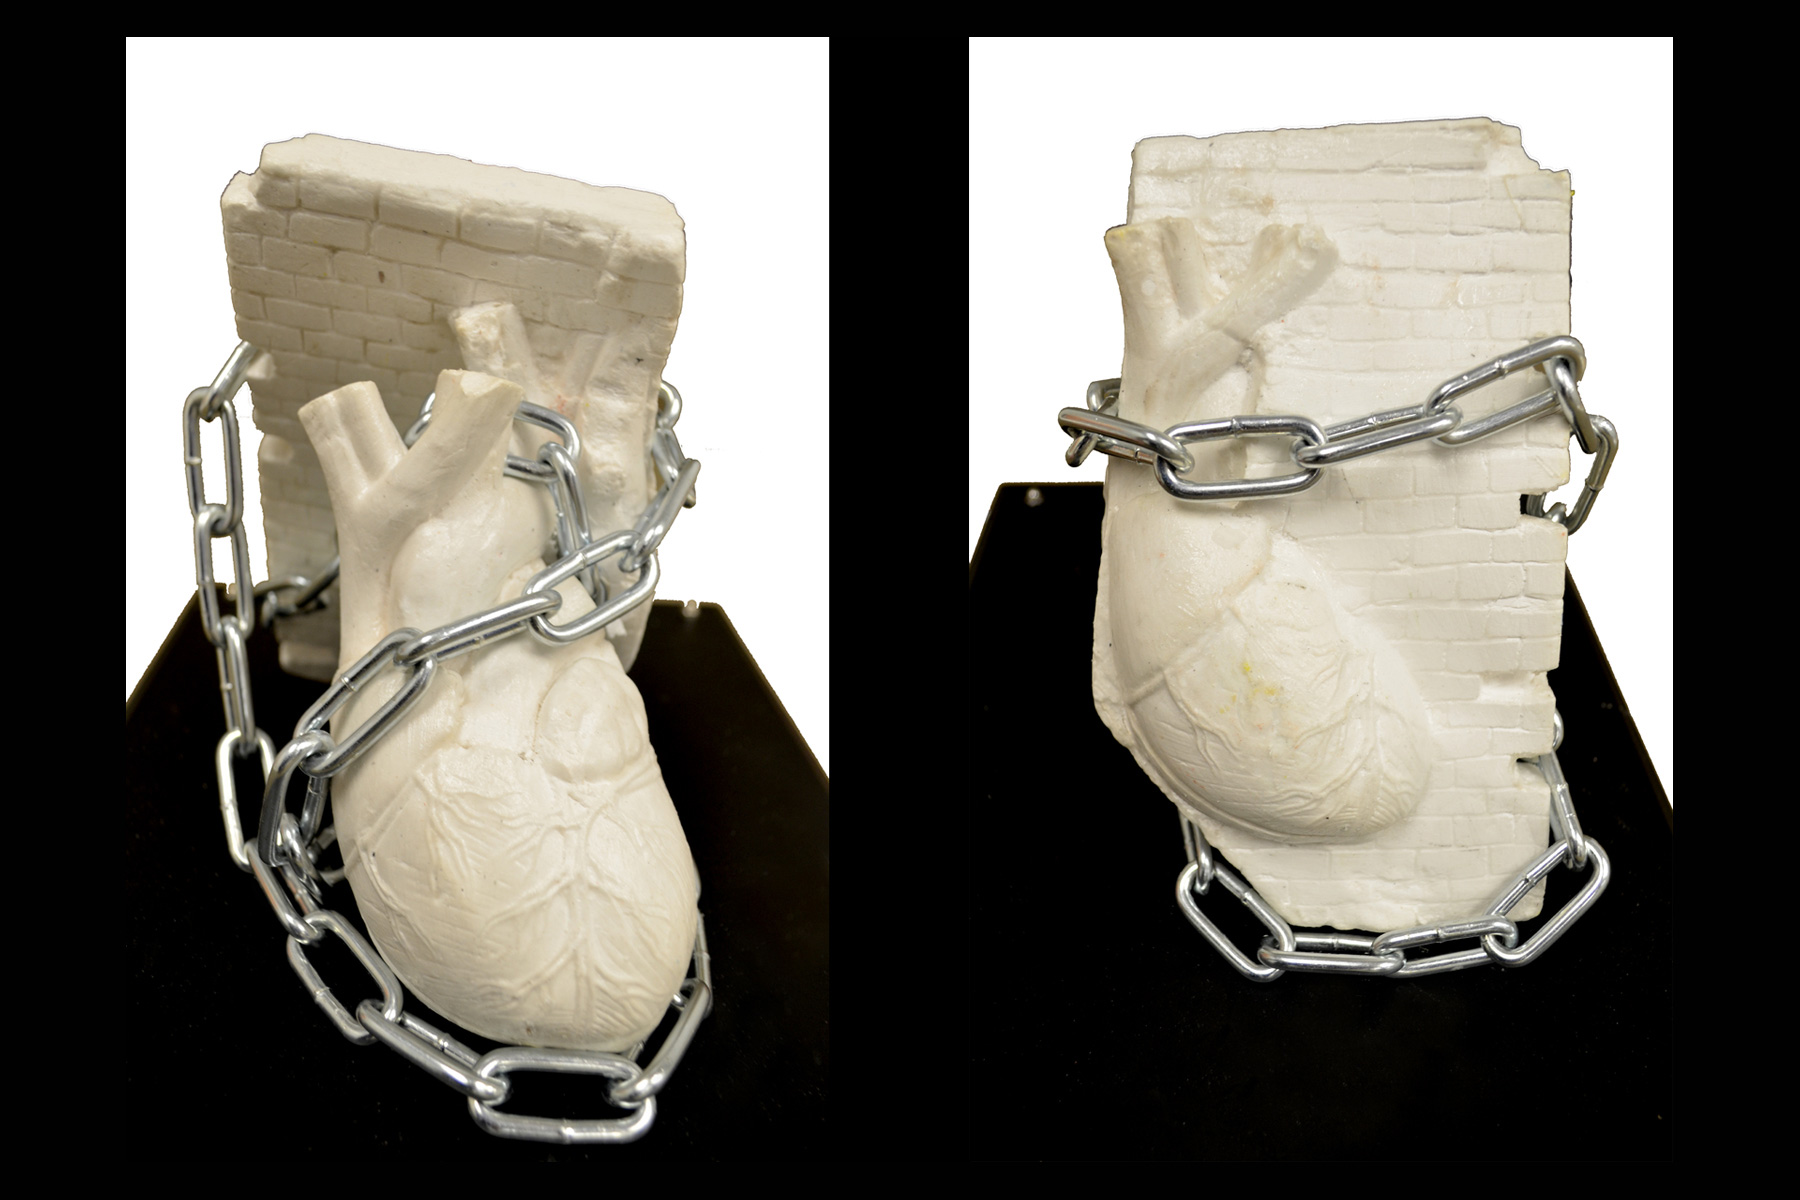 Sculpture of chained heart